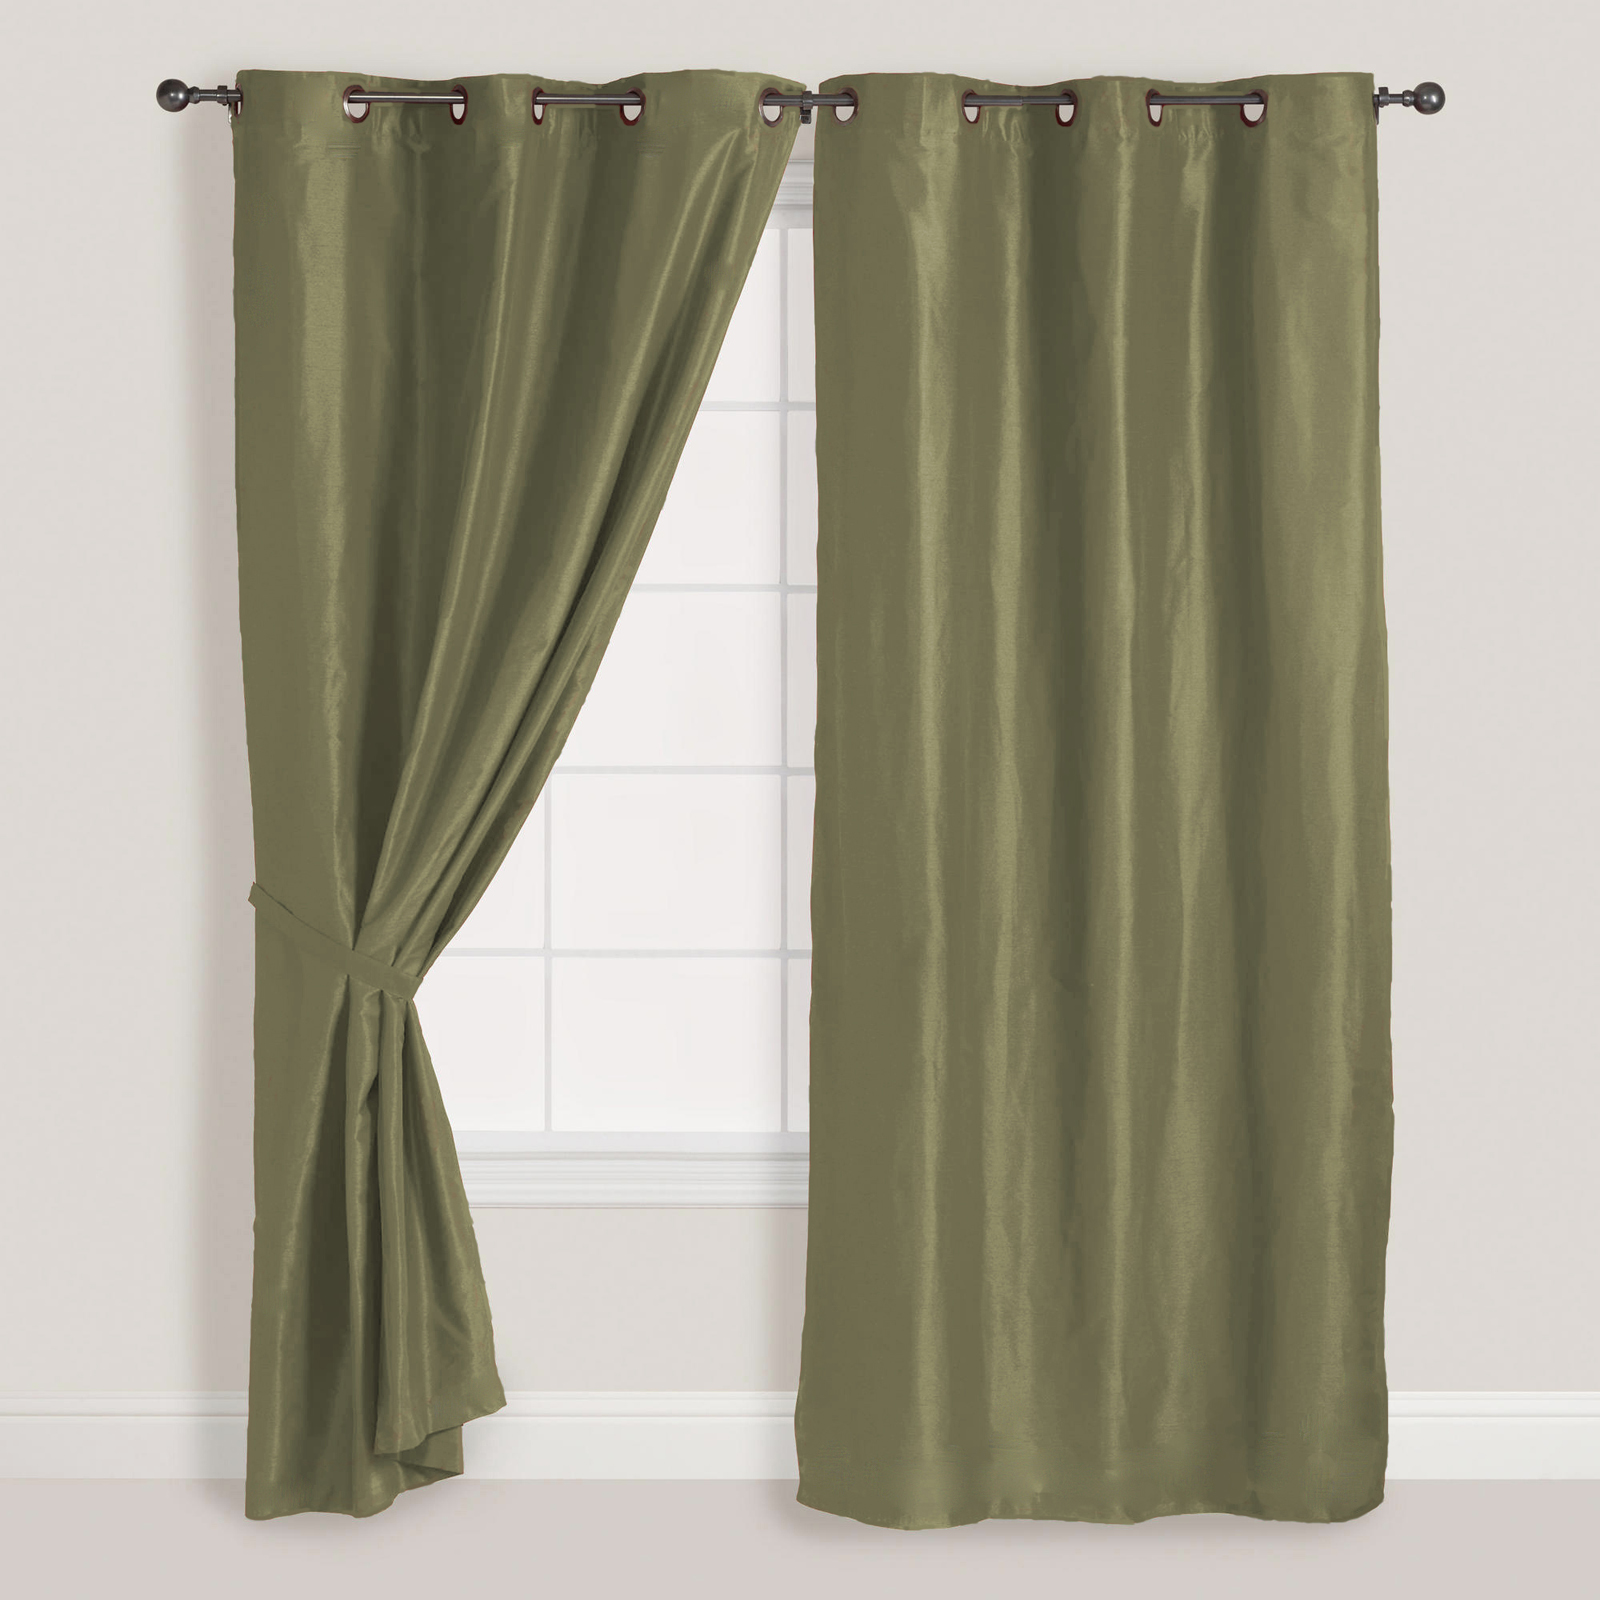 Curtains ideas sage green curtain panels inspiring pictures of curtains designs and - Curtains designs images ...